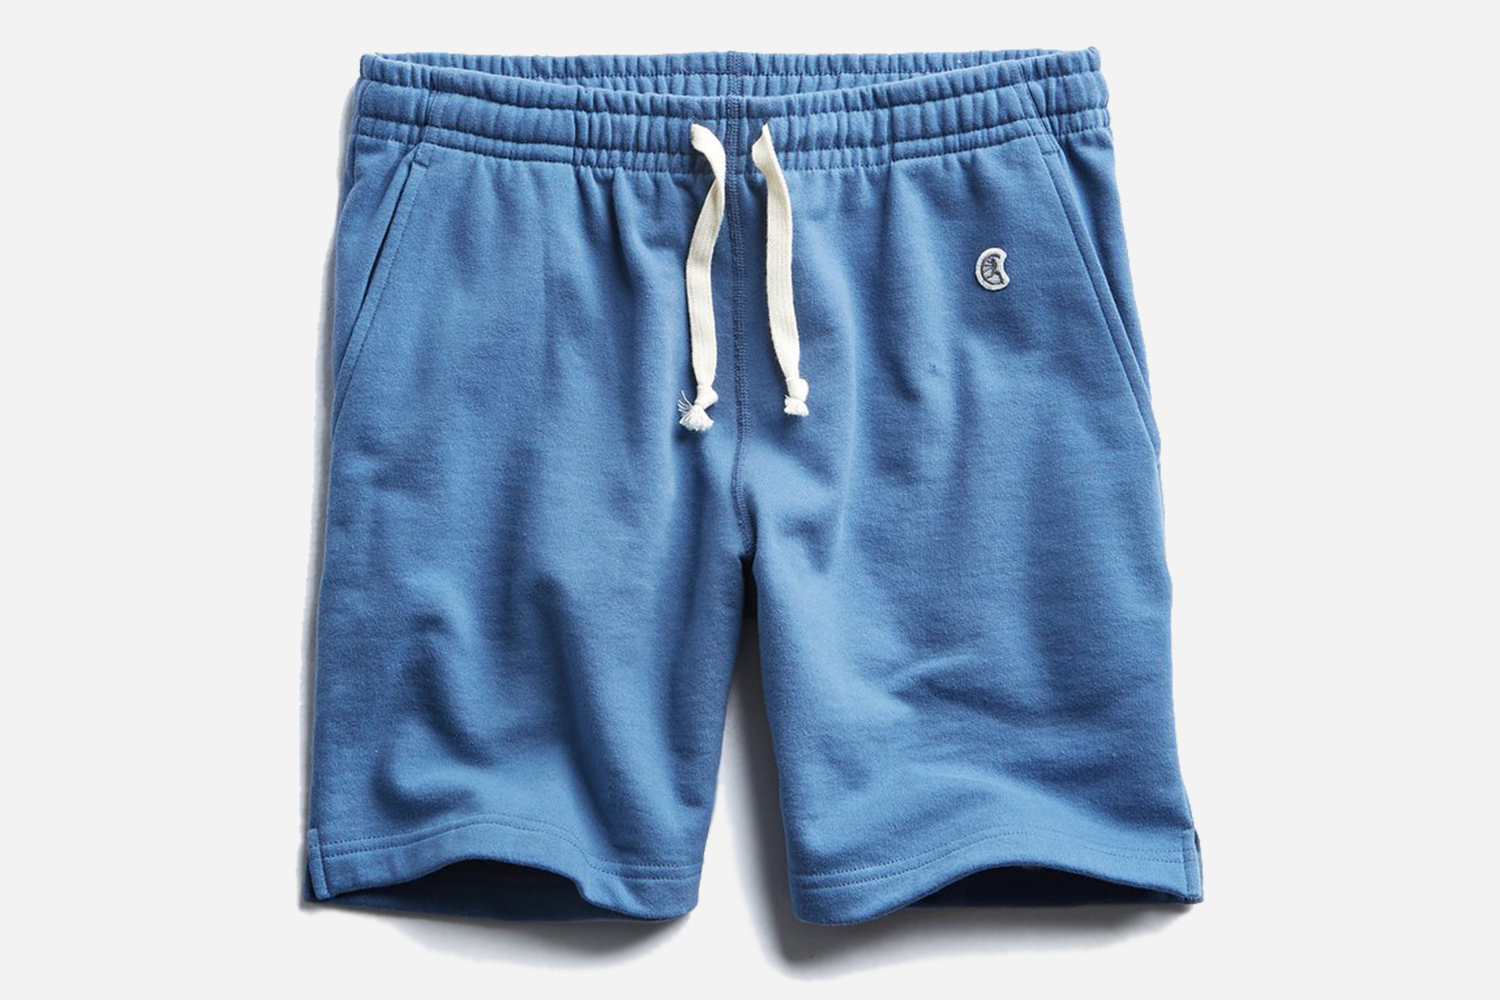 Todd Snyder Champion Terry Warm Up Shorts Clearance Sale